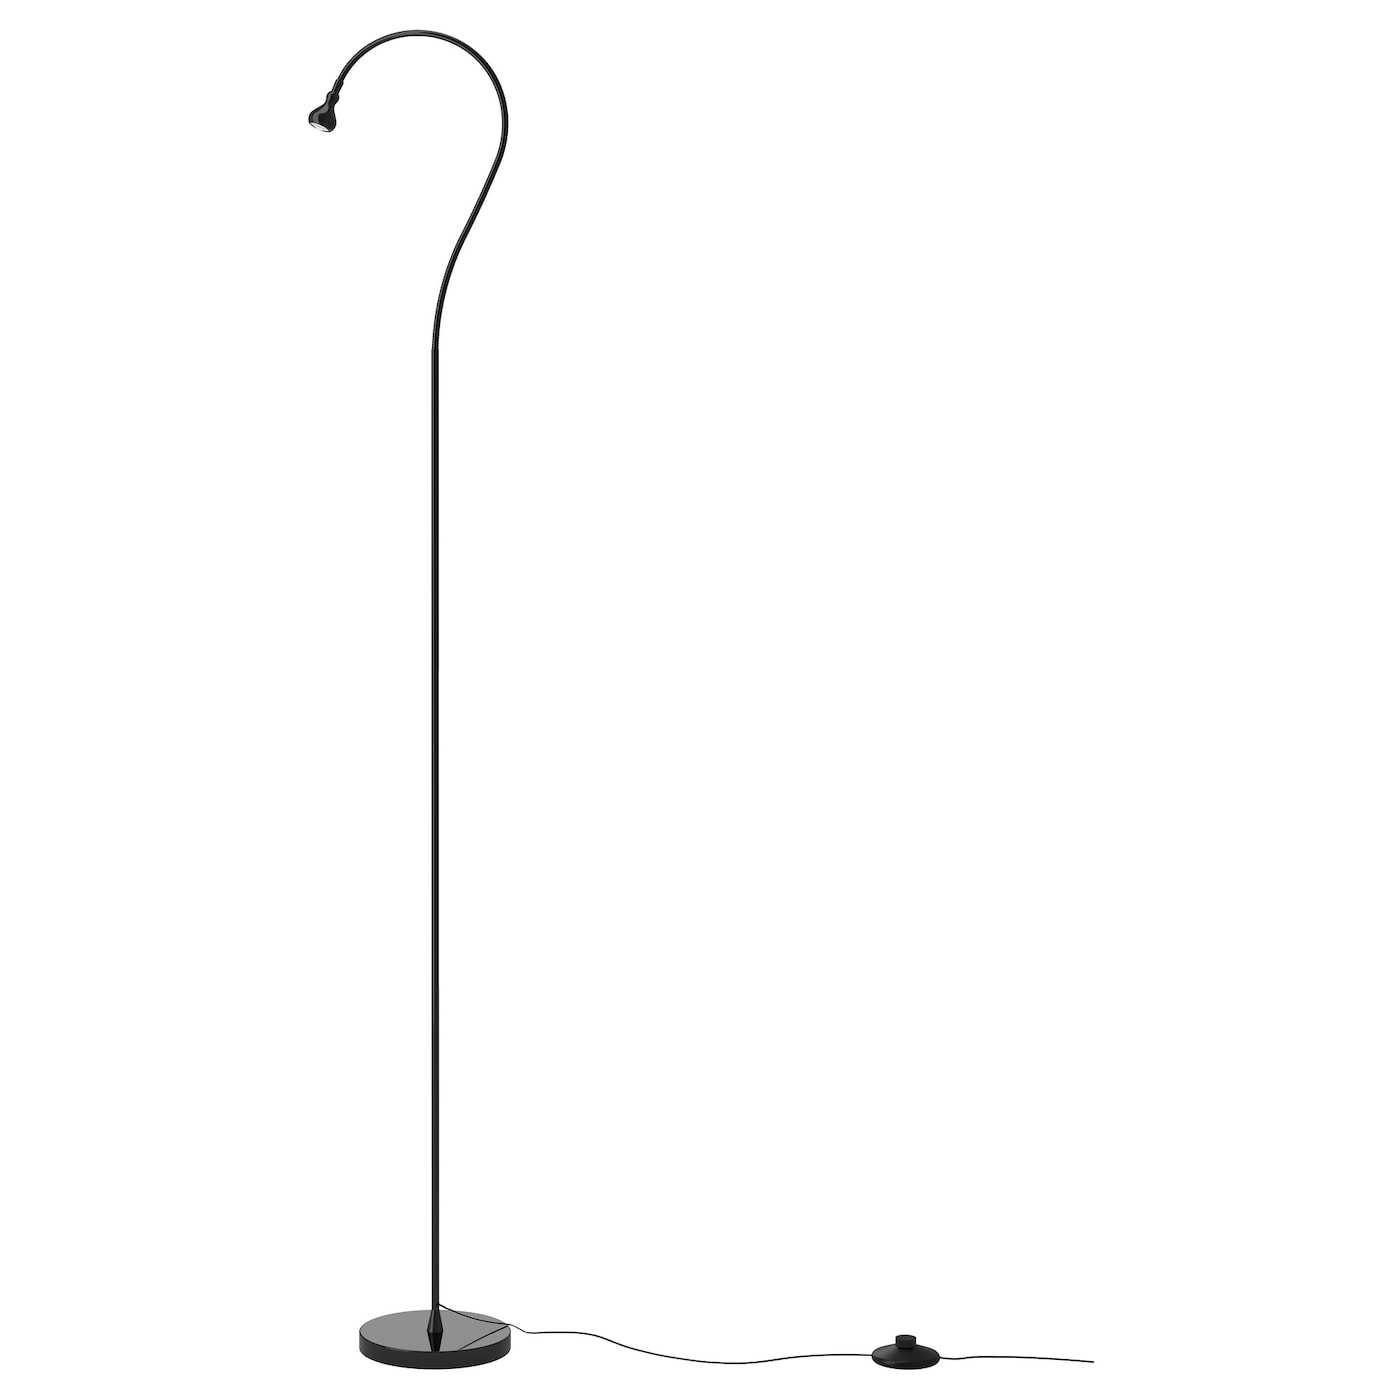 IKEA JANSJÖ LED floor/read lamp Gives directional light that is good for focused lighting.